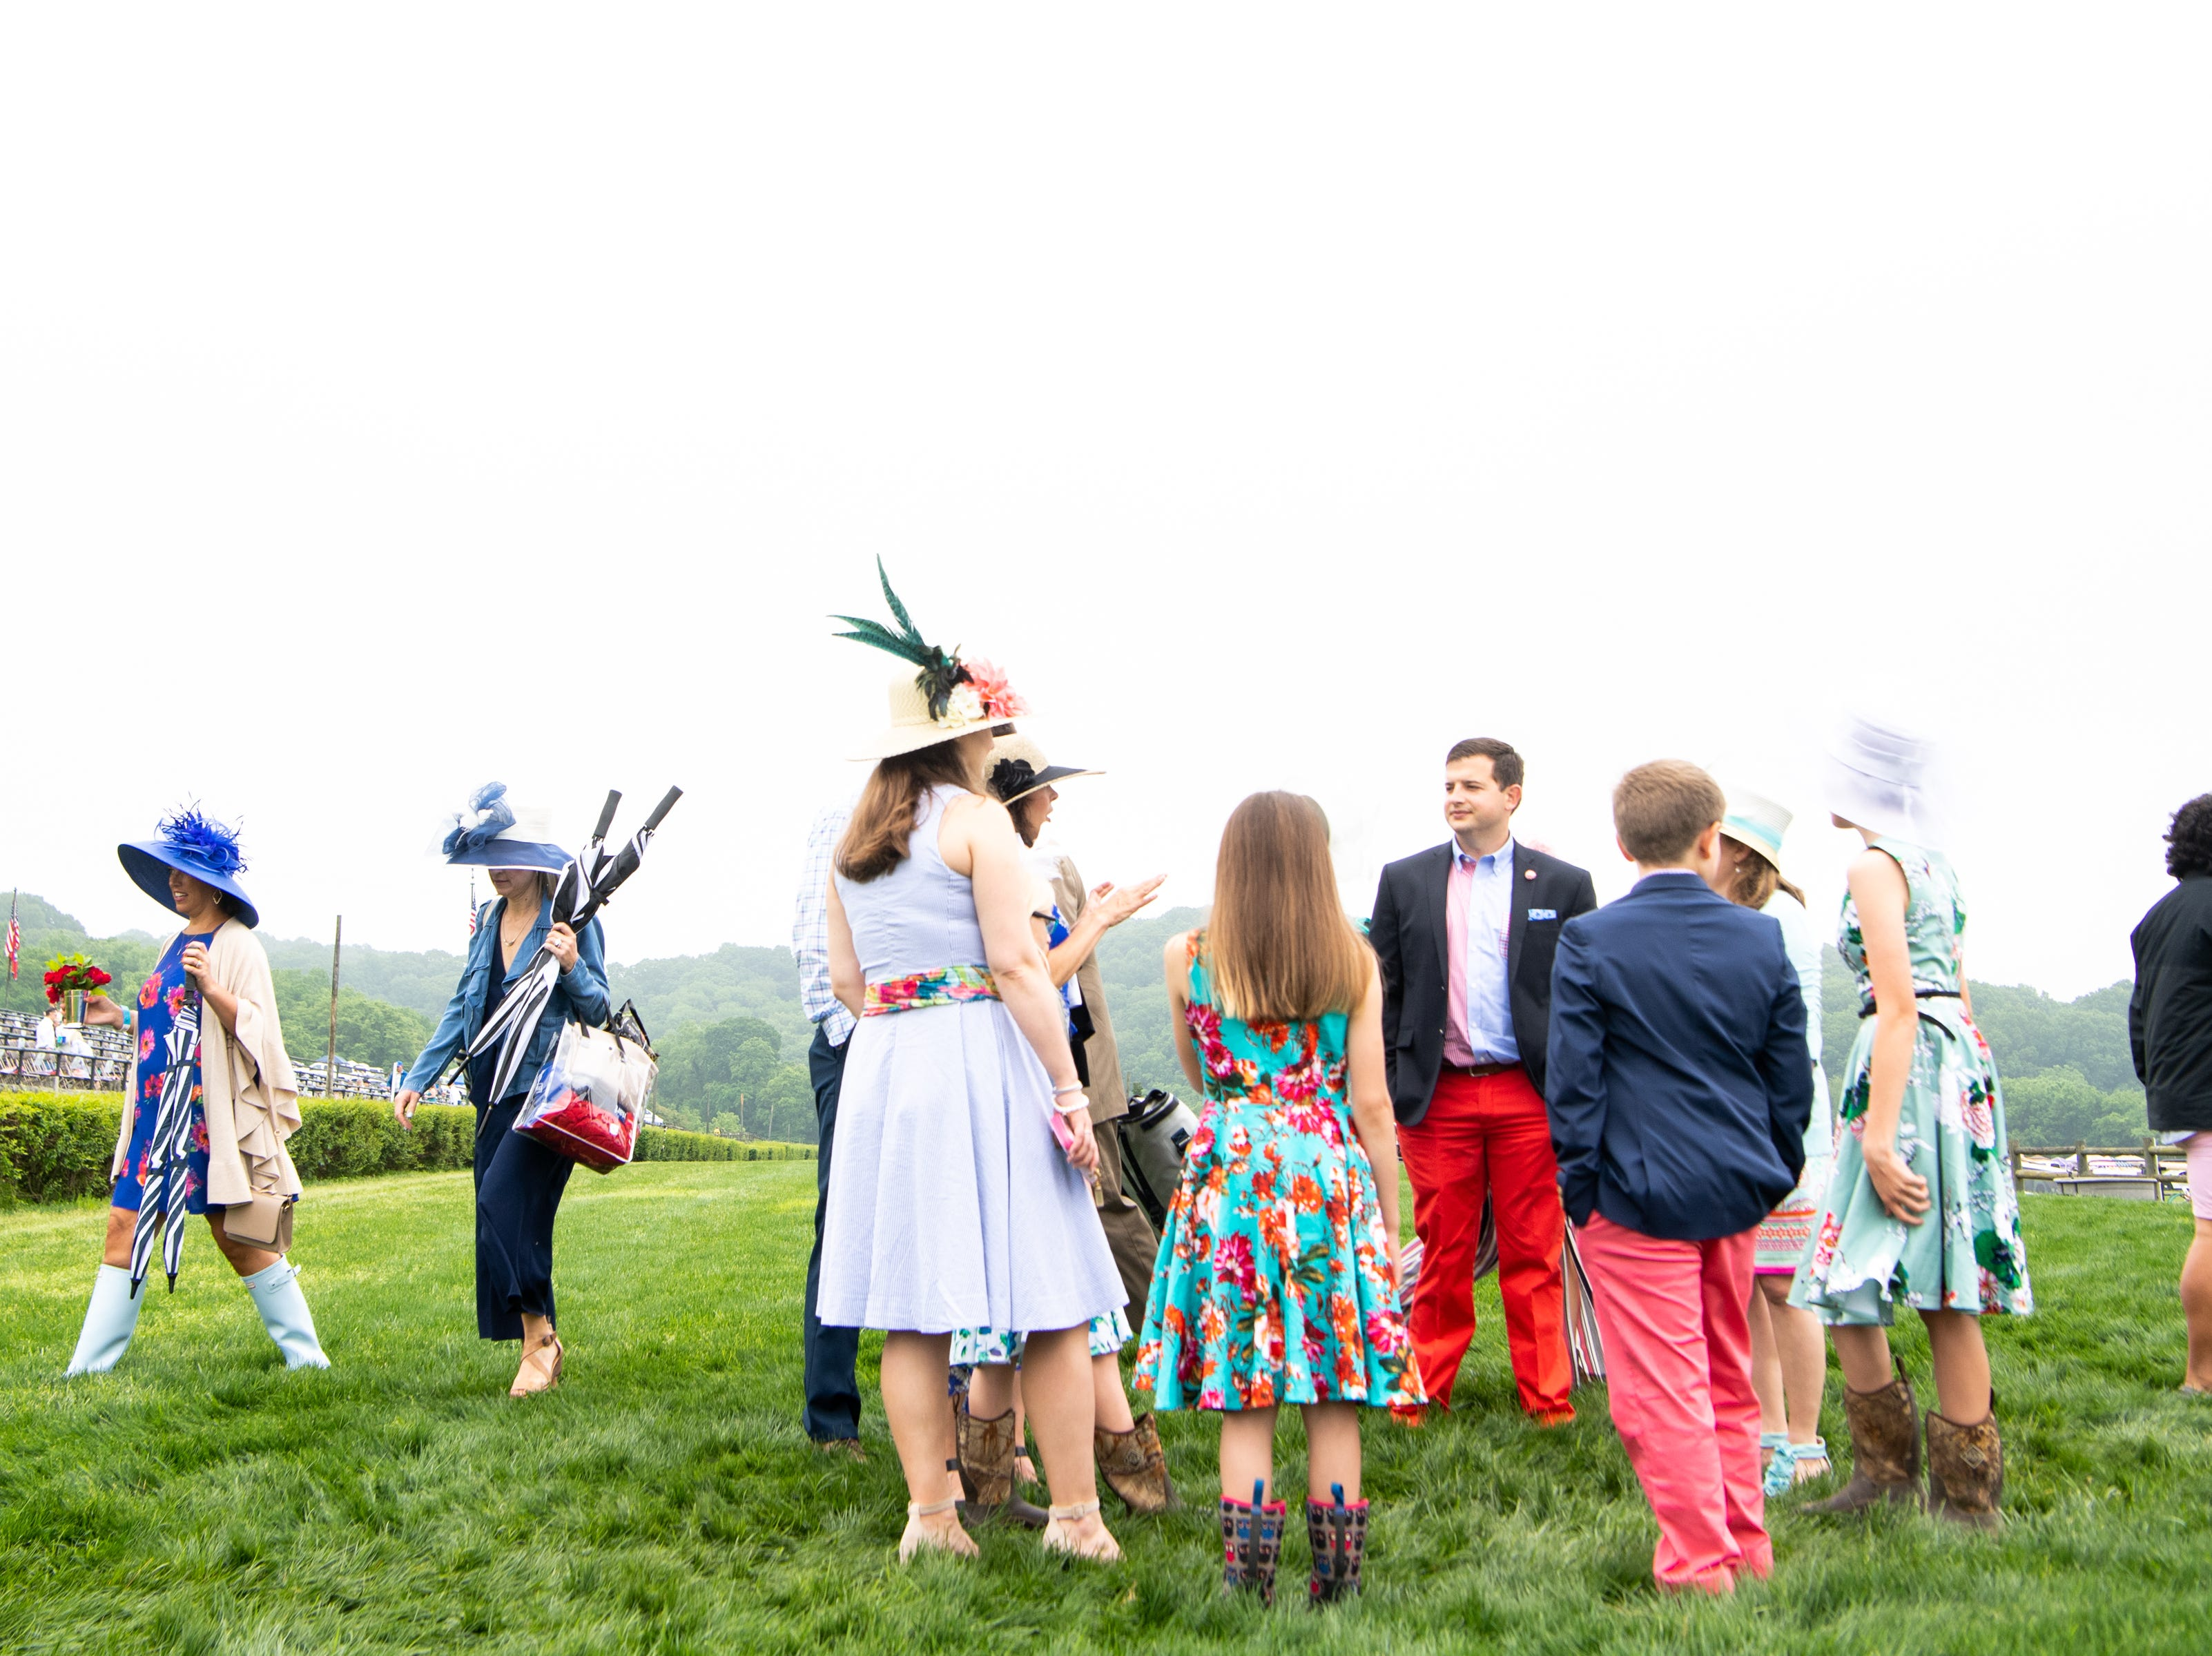 People gather during the Iroquois Steeplechase at Percy Warner Park Saturday, May 11, 2019, in Nashville, Tenn.